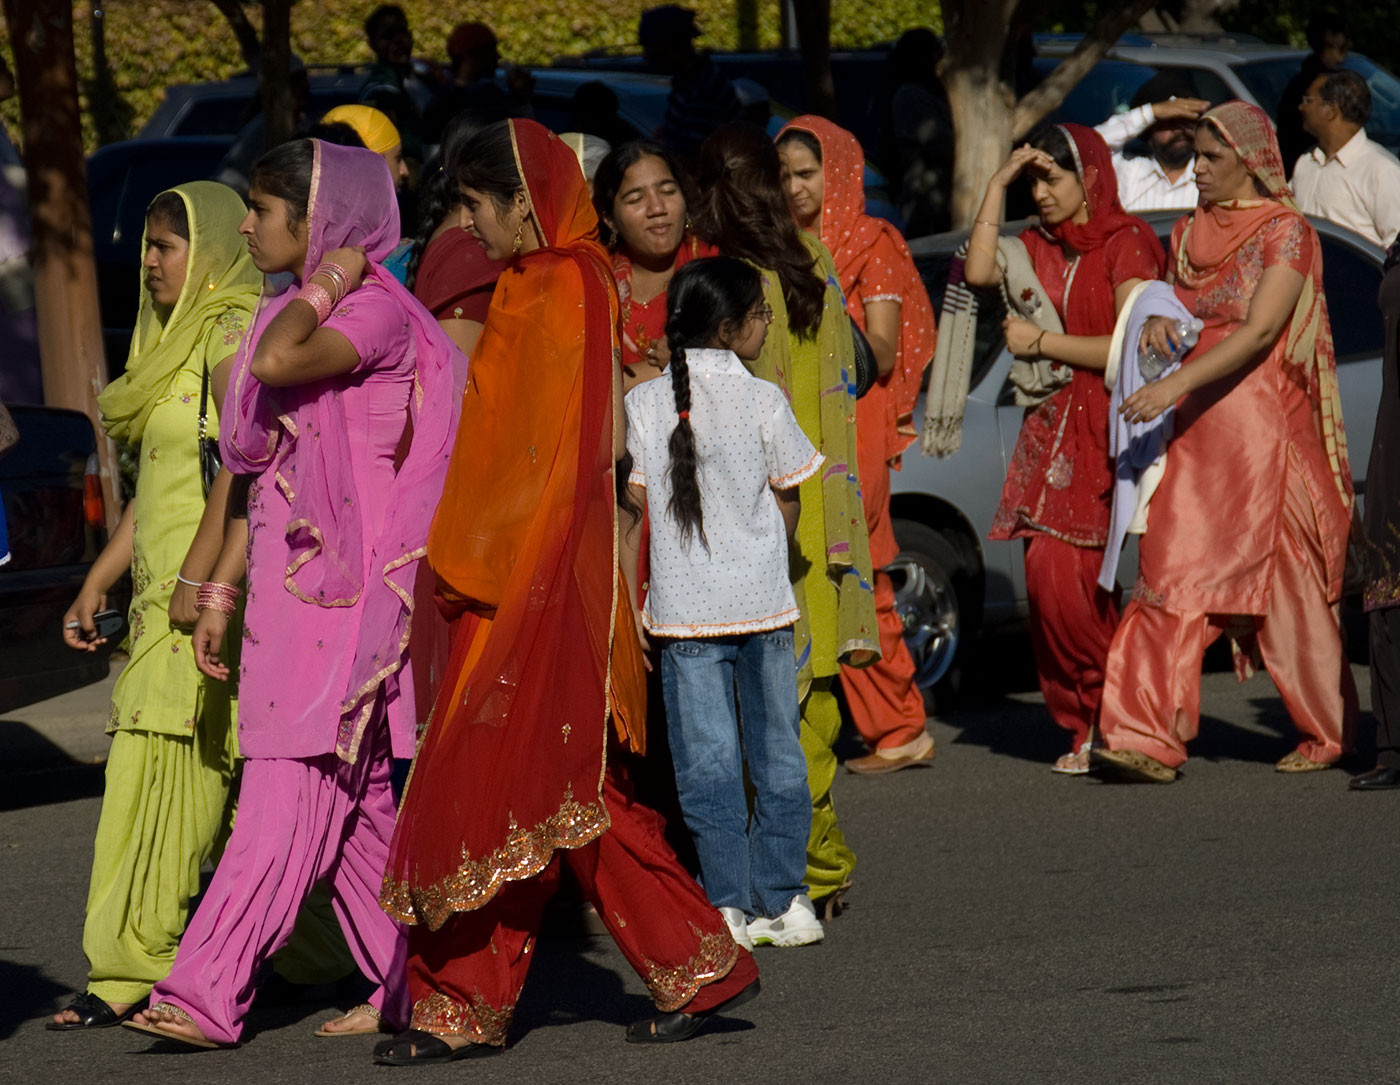 Photo of a group of colorfully dressed women in Yuba City during a parade by Marge d'Wylde